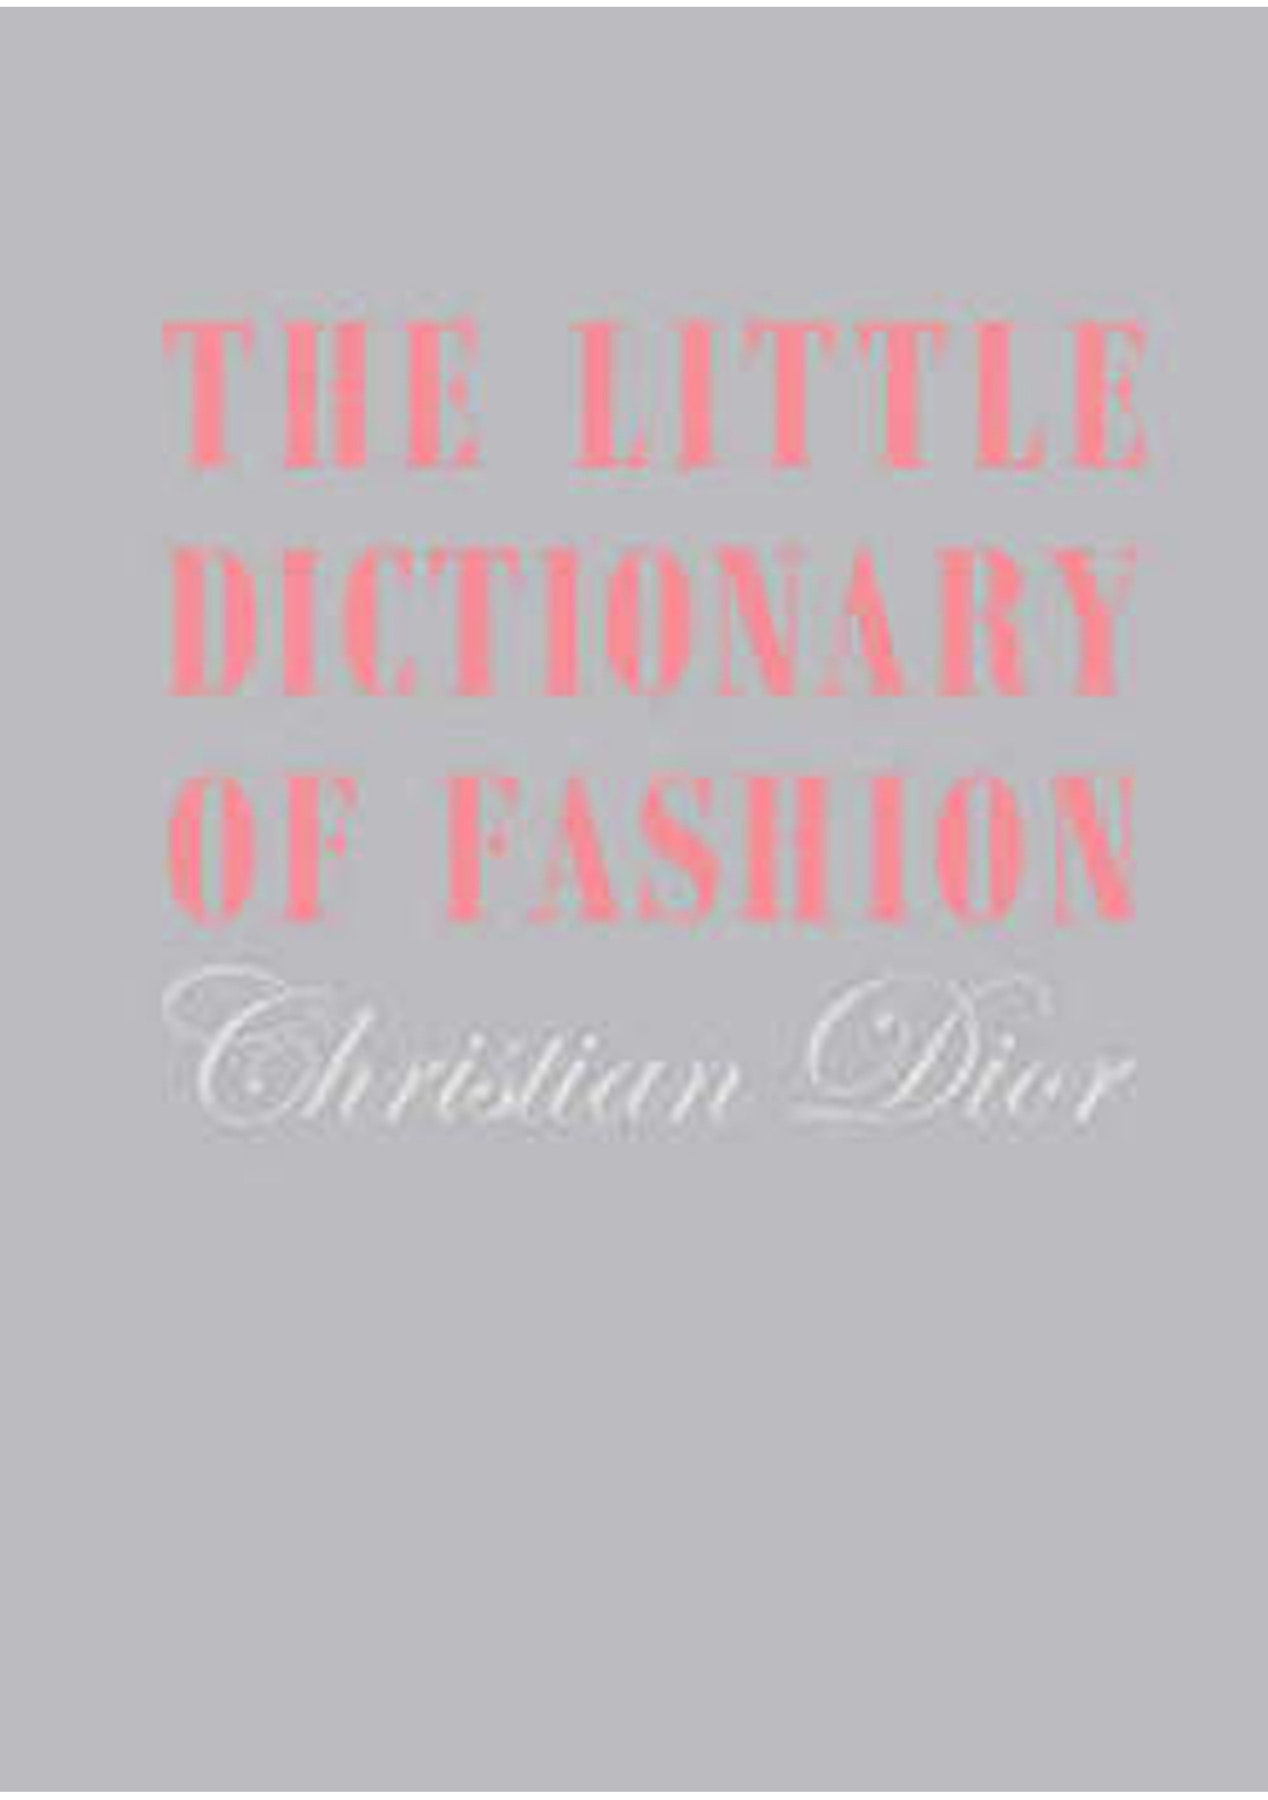 Little Dictionary of Fashion Gift Edition, by Christian Dior